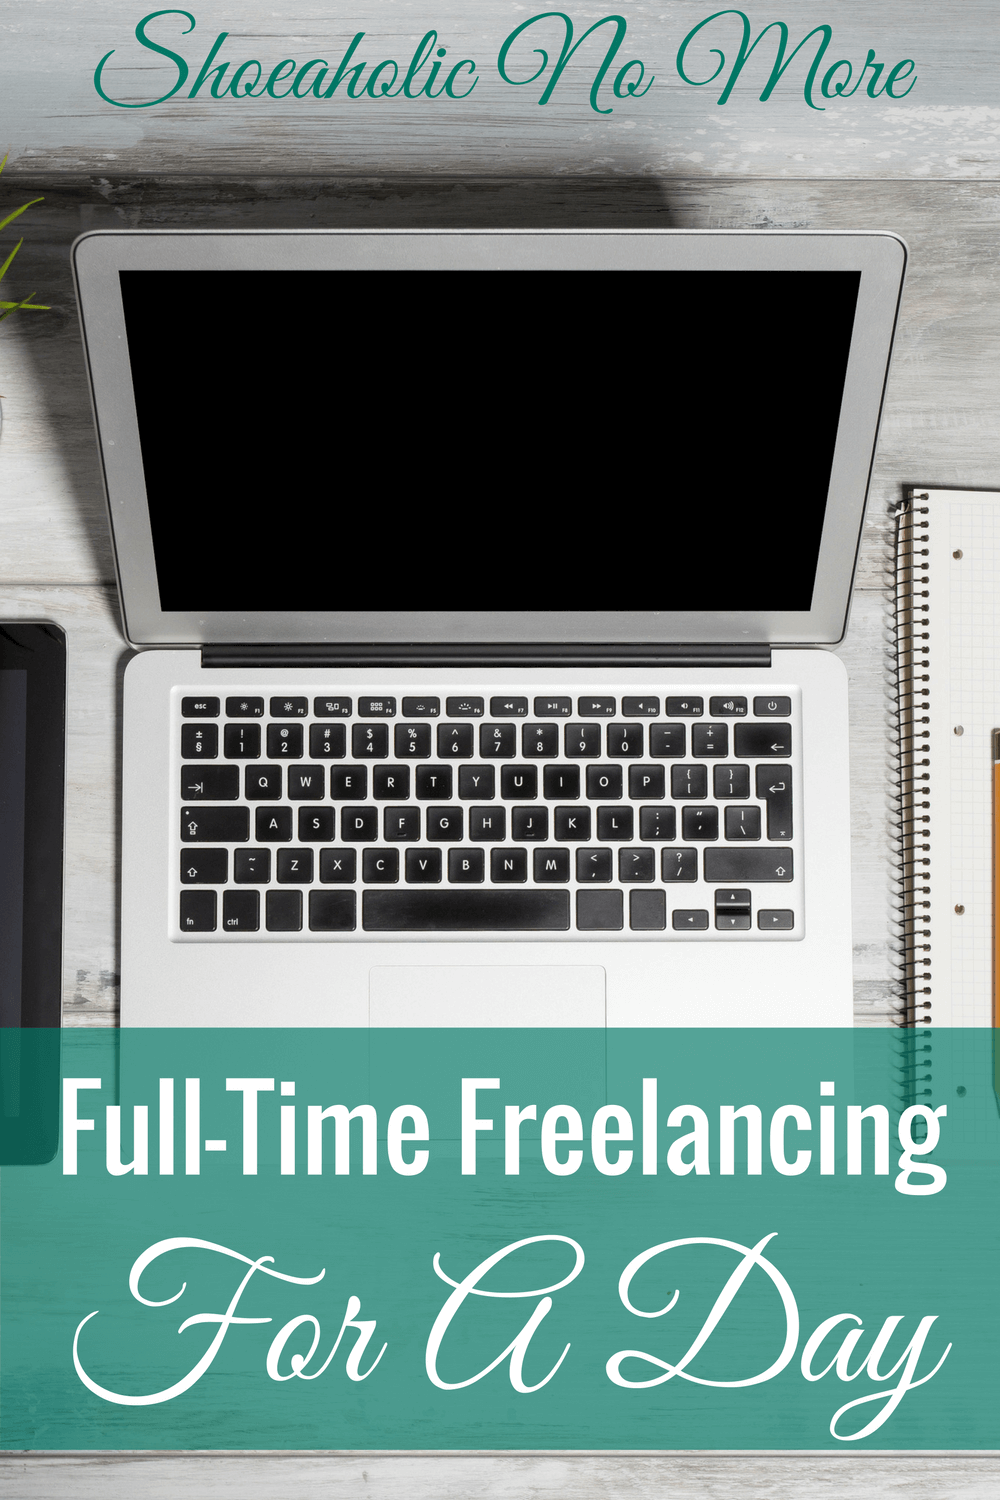 Full-time freelancing seems like a lot of work, but it looks like it's worth it!